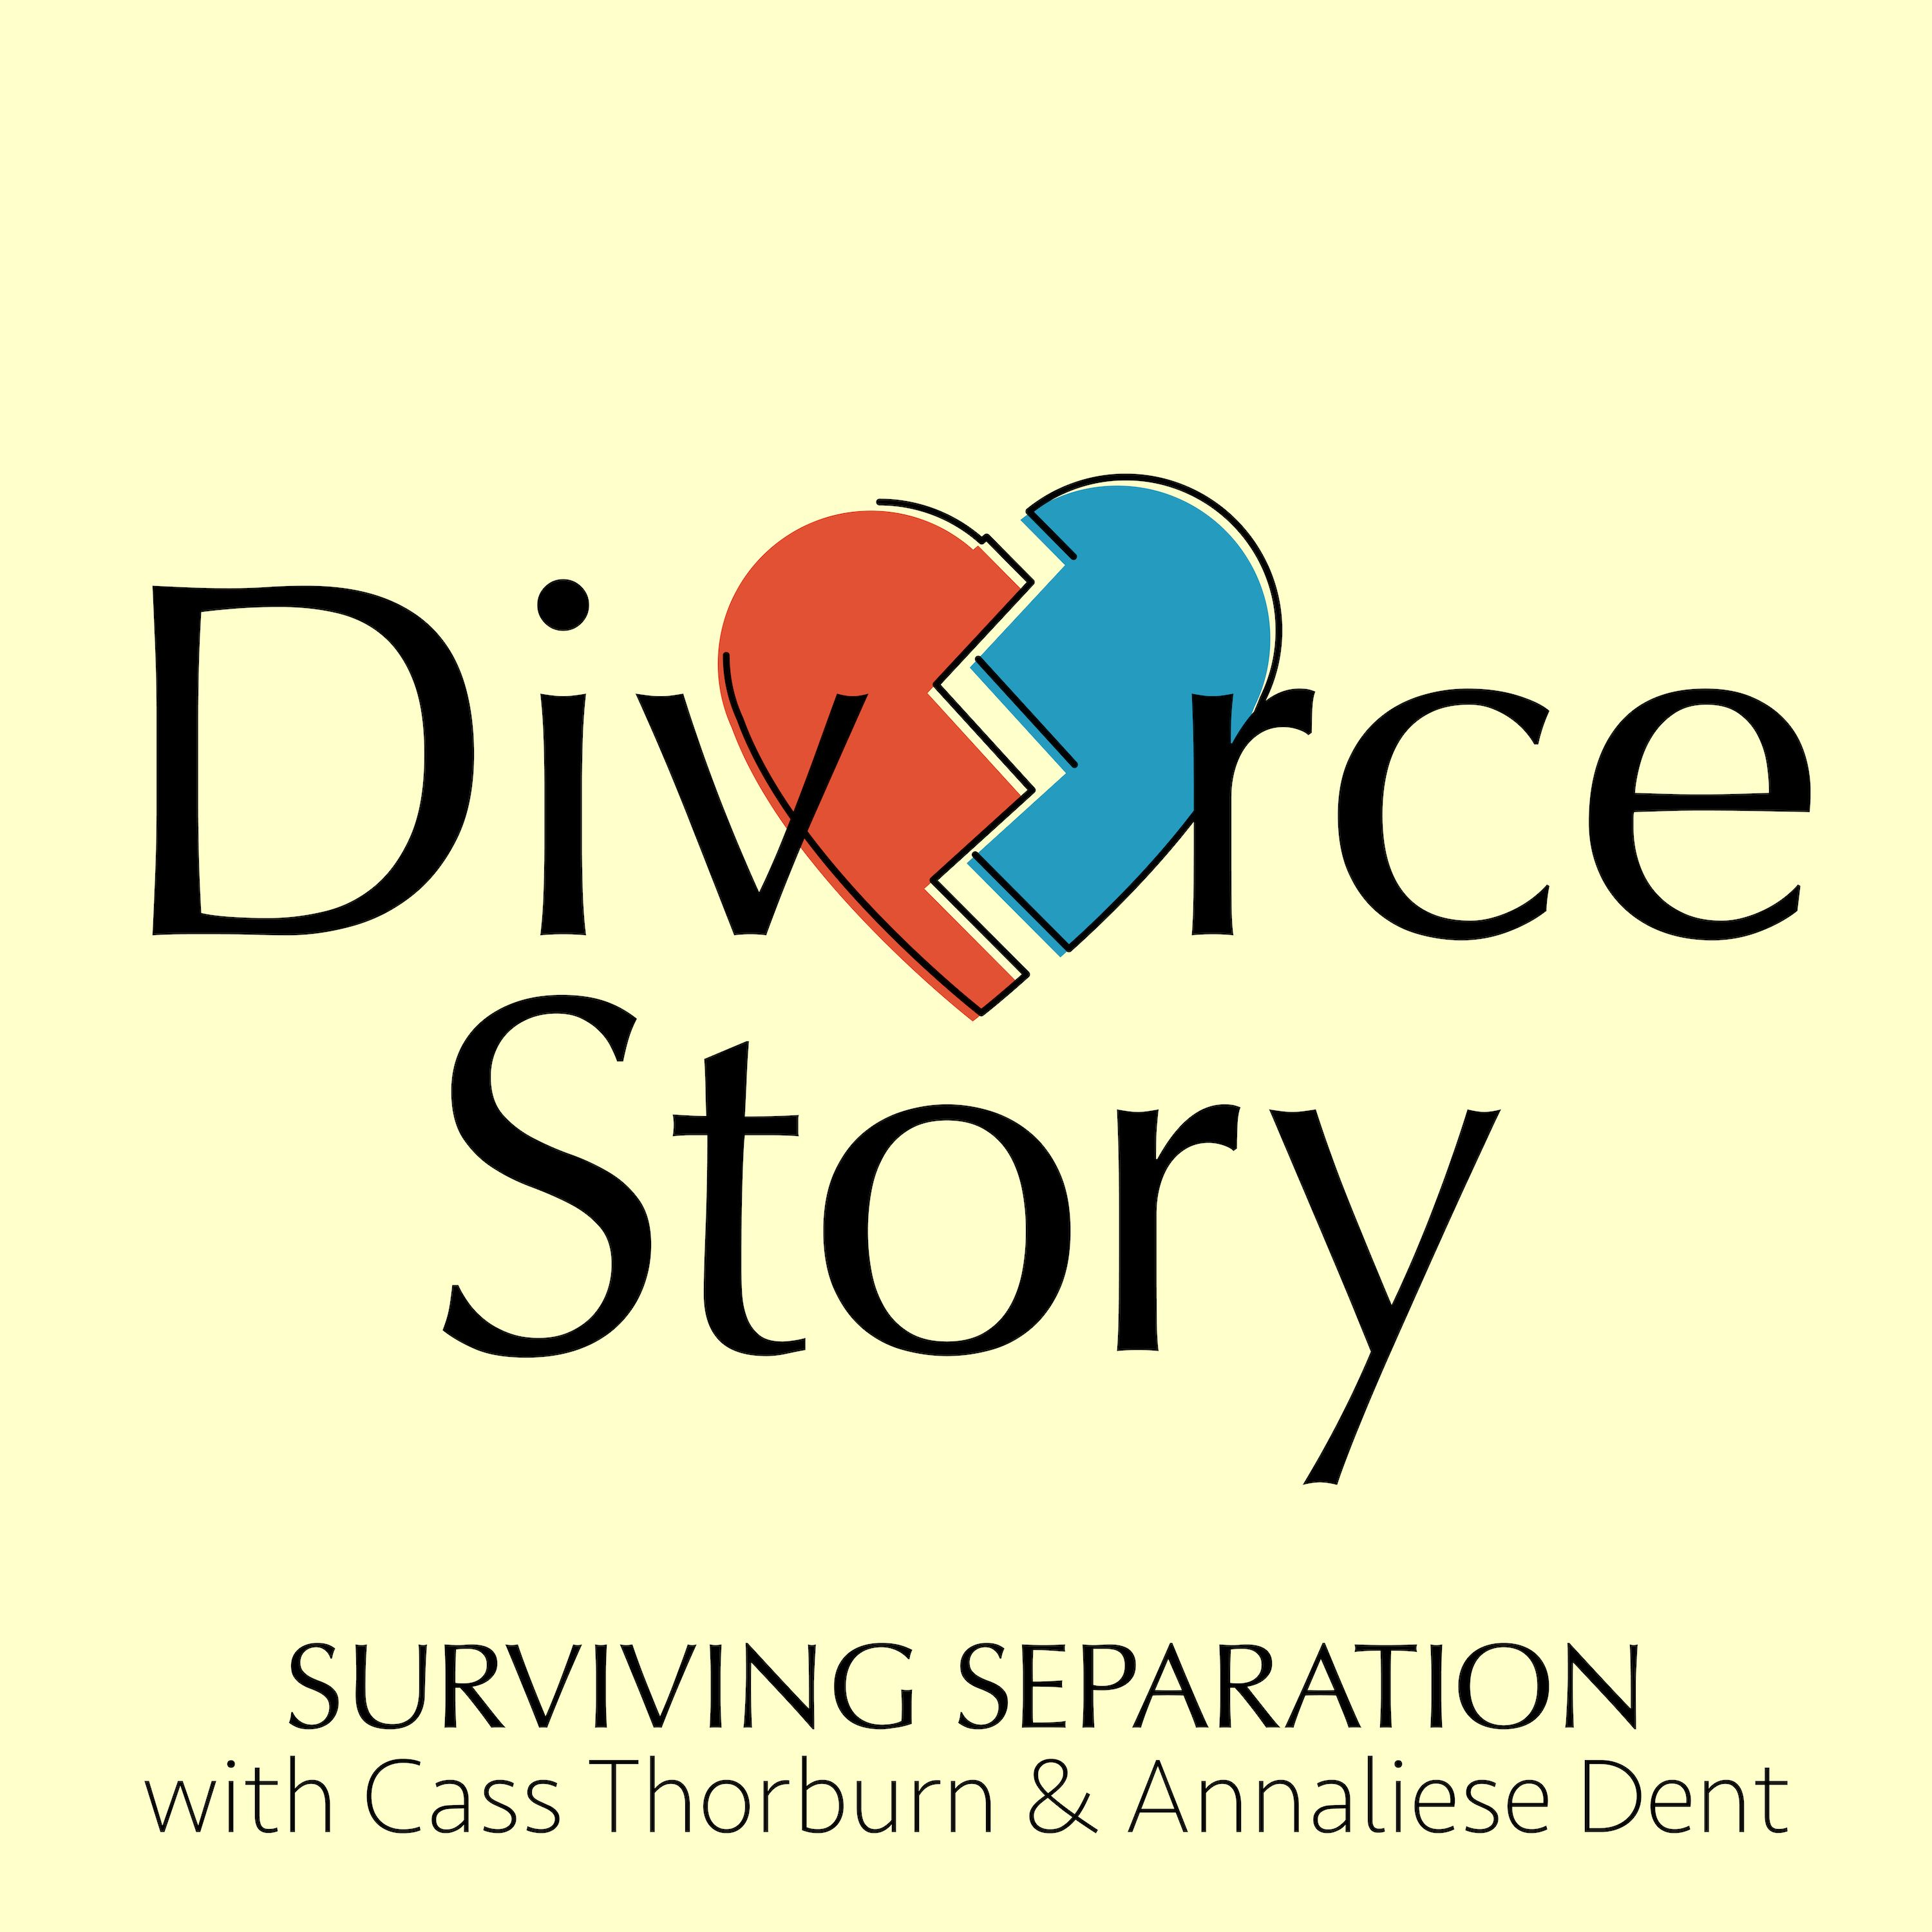 Divorce Story - How to deal with gossip after a separation